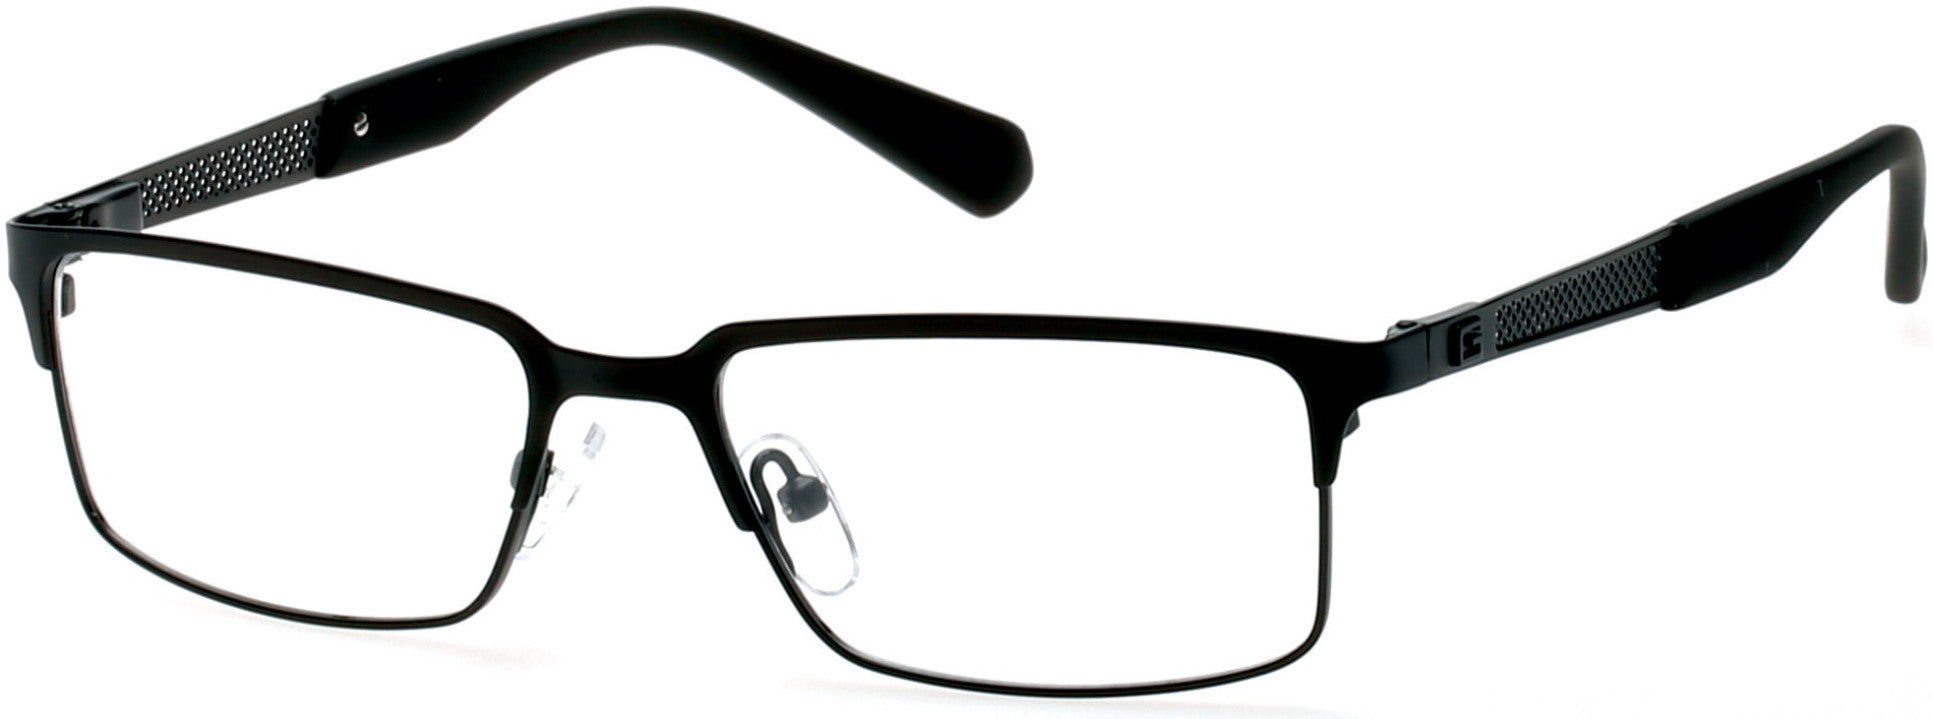 Guess GU1861 Eyeglasses 002-002 - Matte Black